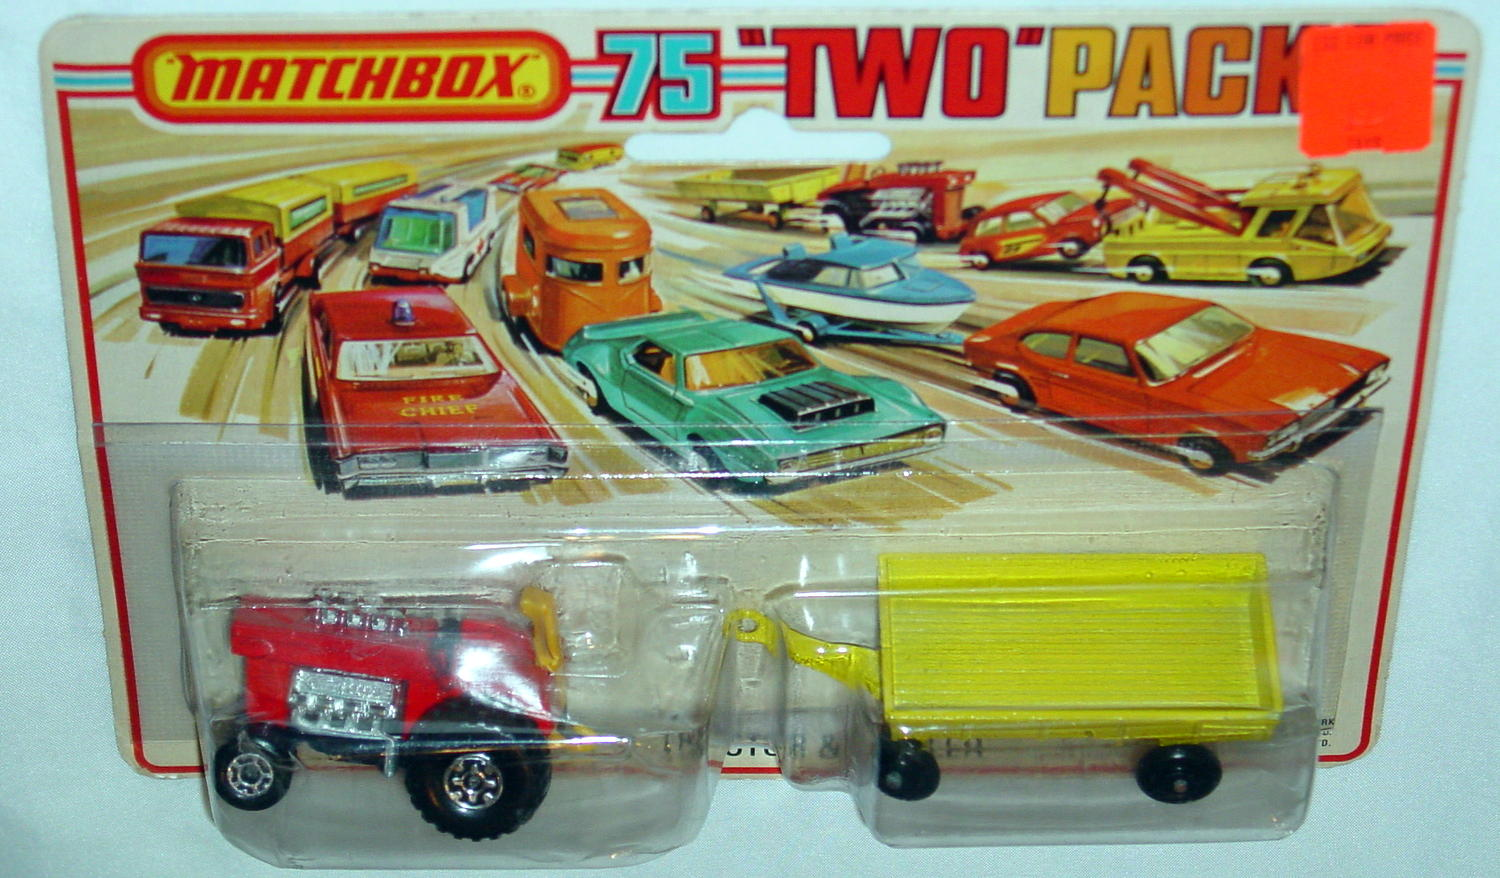 Twin Pack 02 A 1 - red 25B9 Mod Tractor yellow 40C2 RW C9+ Tall card